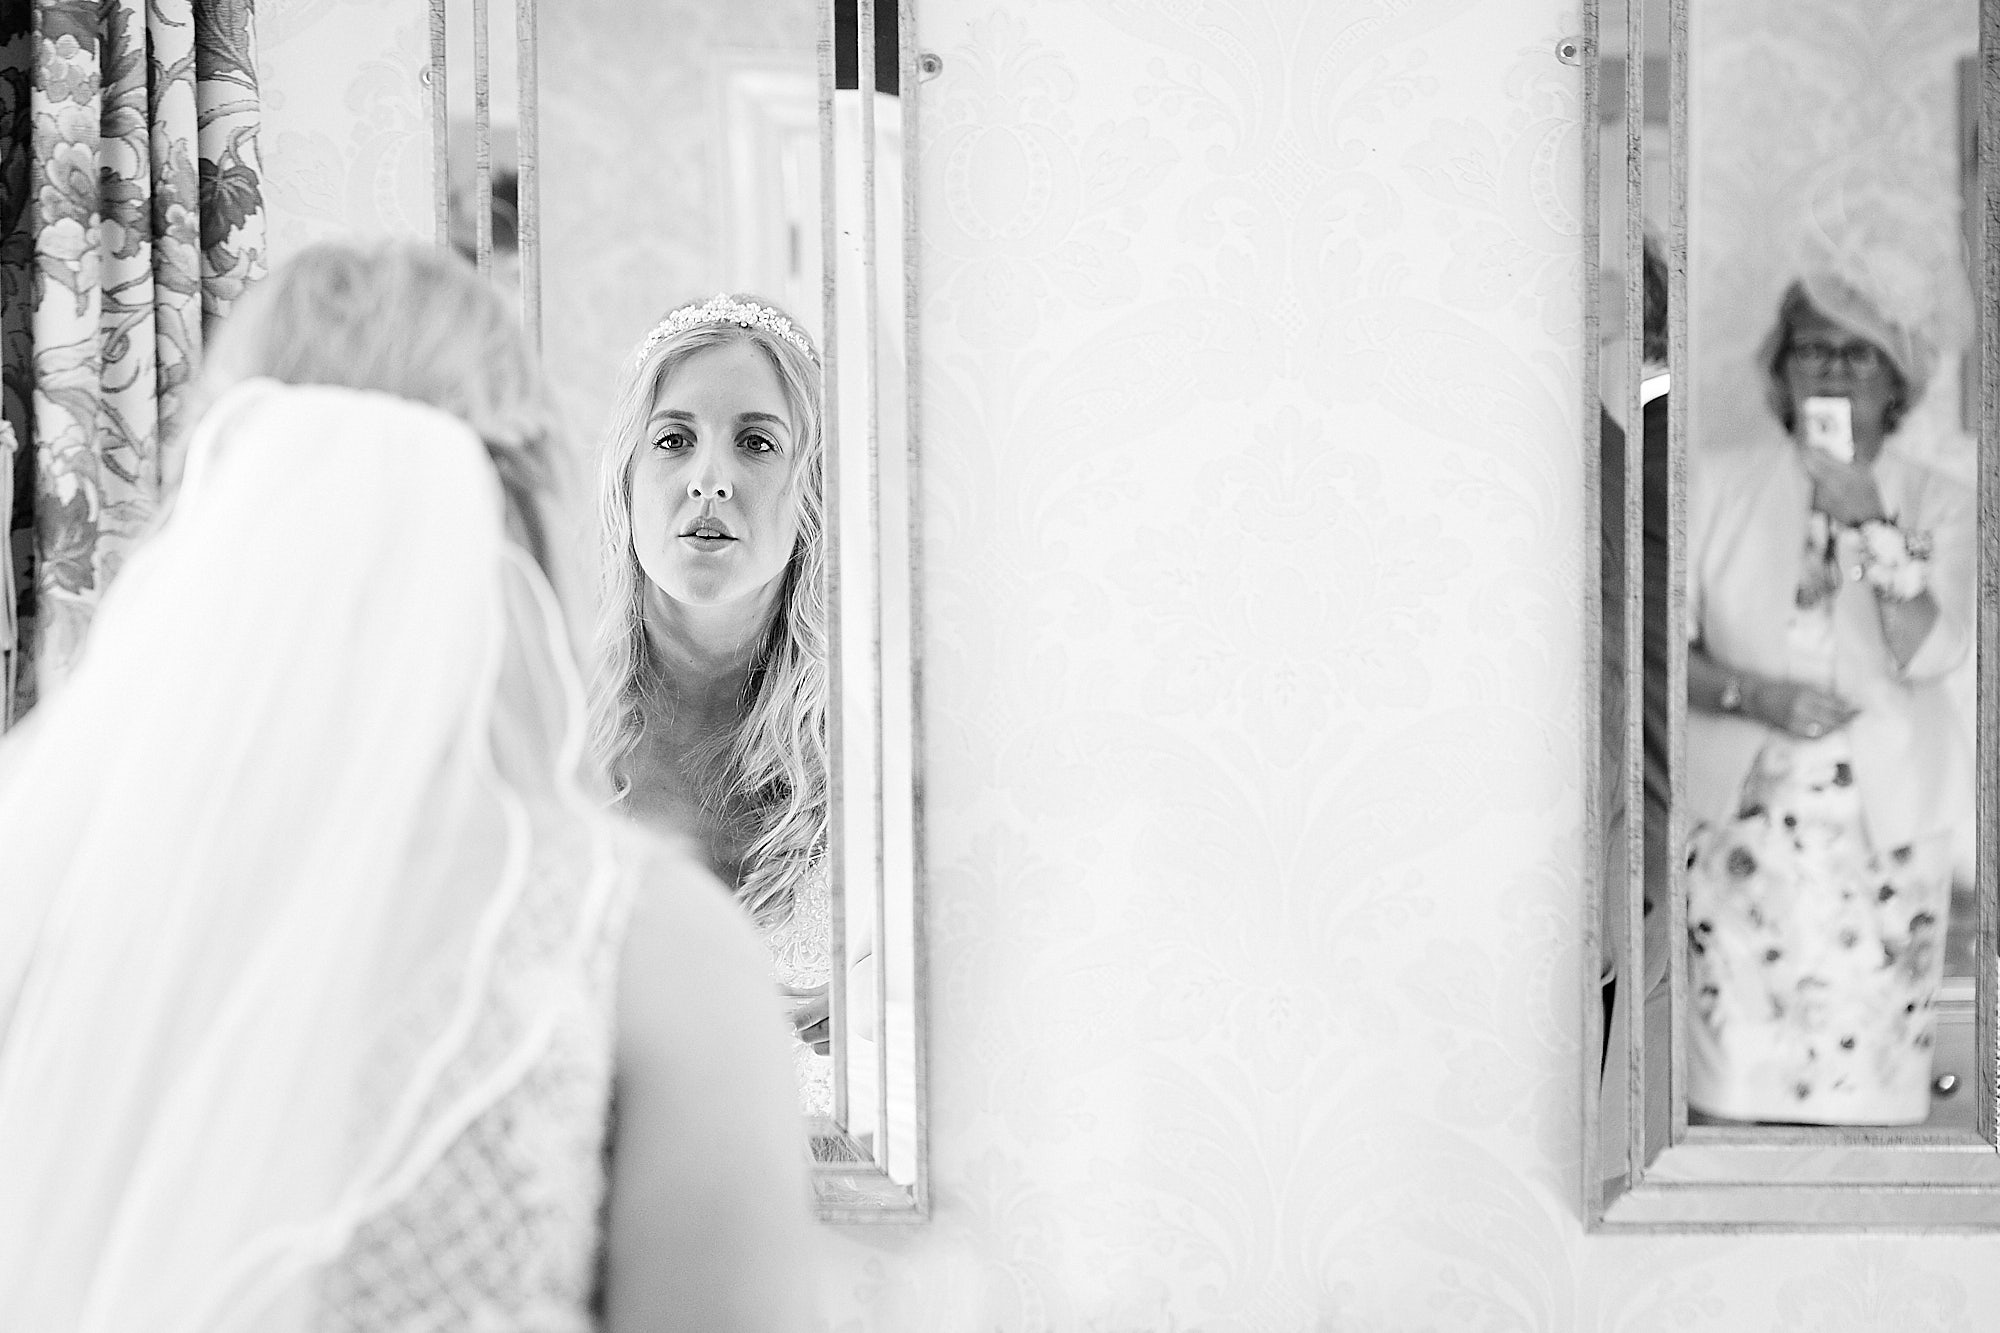 A documentary wedding photograph of a bride preparing her makeup in the mirror. In the reflection, her mother proudly looks on and snaps a photo on her phone.